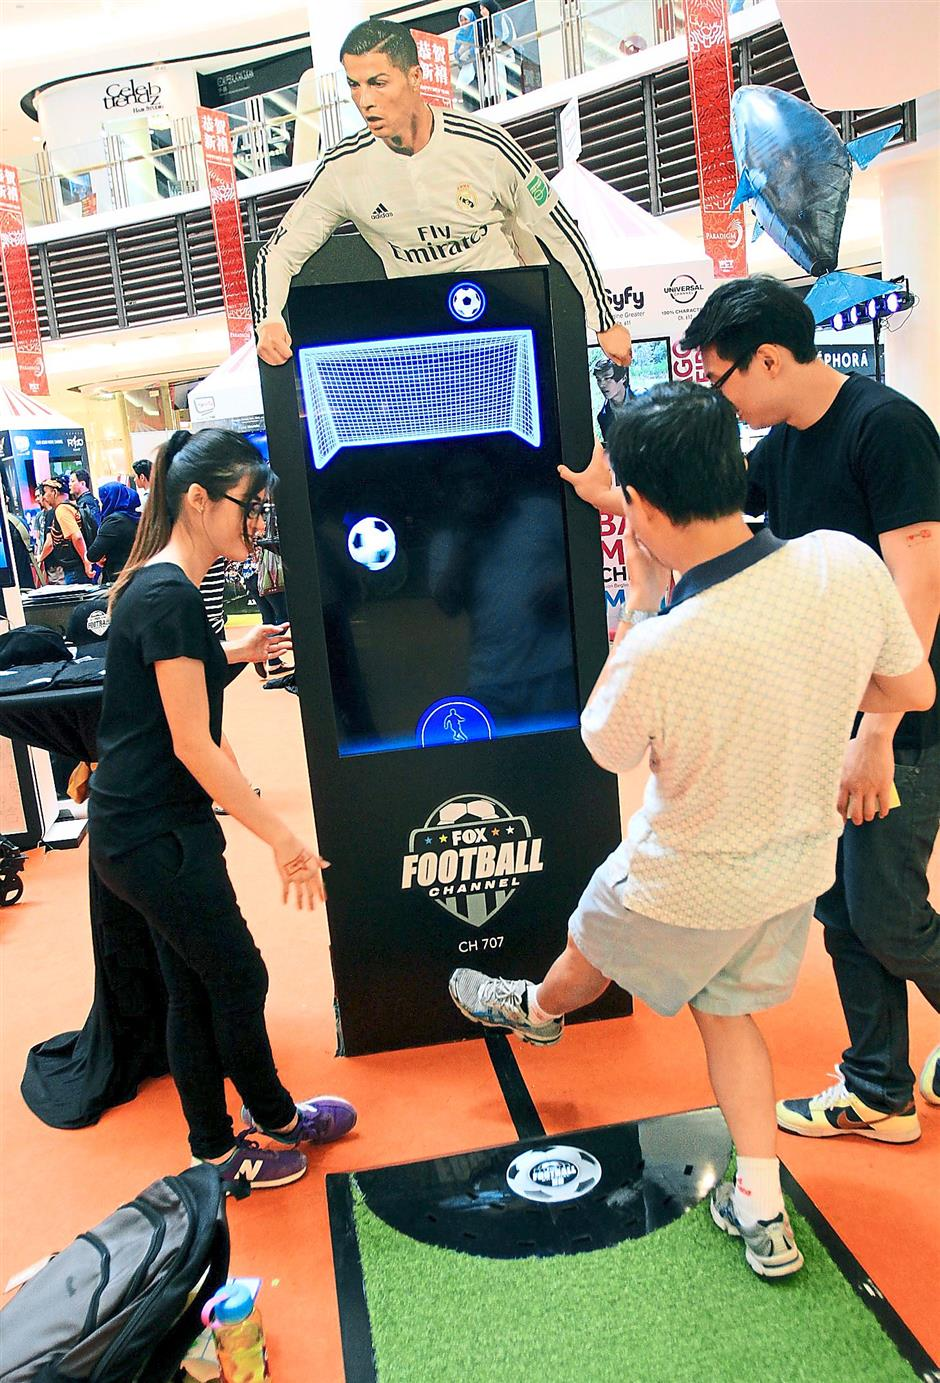 Just like Ronaldo: Guests putting their skills to test at the virtual football simulator, which was set up to introduce the numerous sports channels by HyppTV.